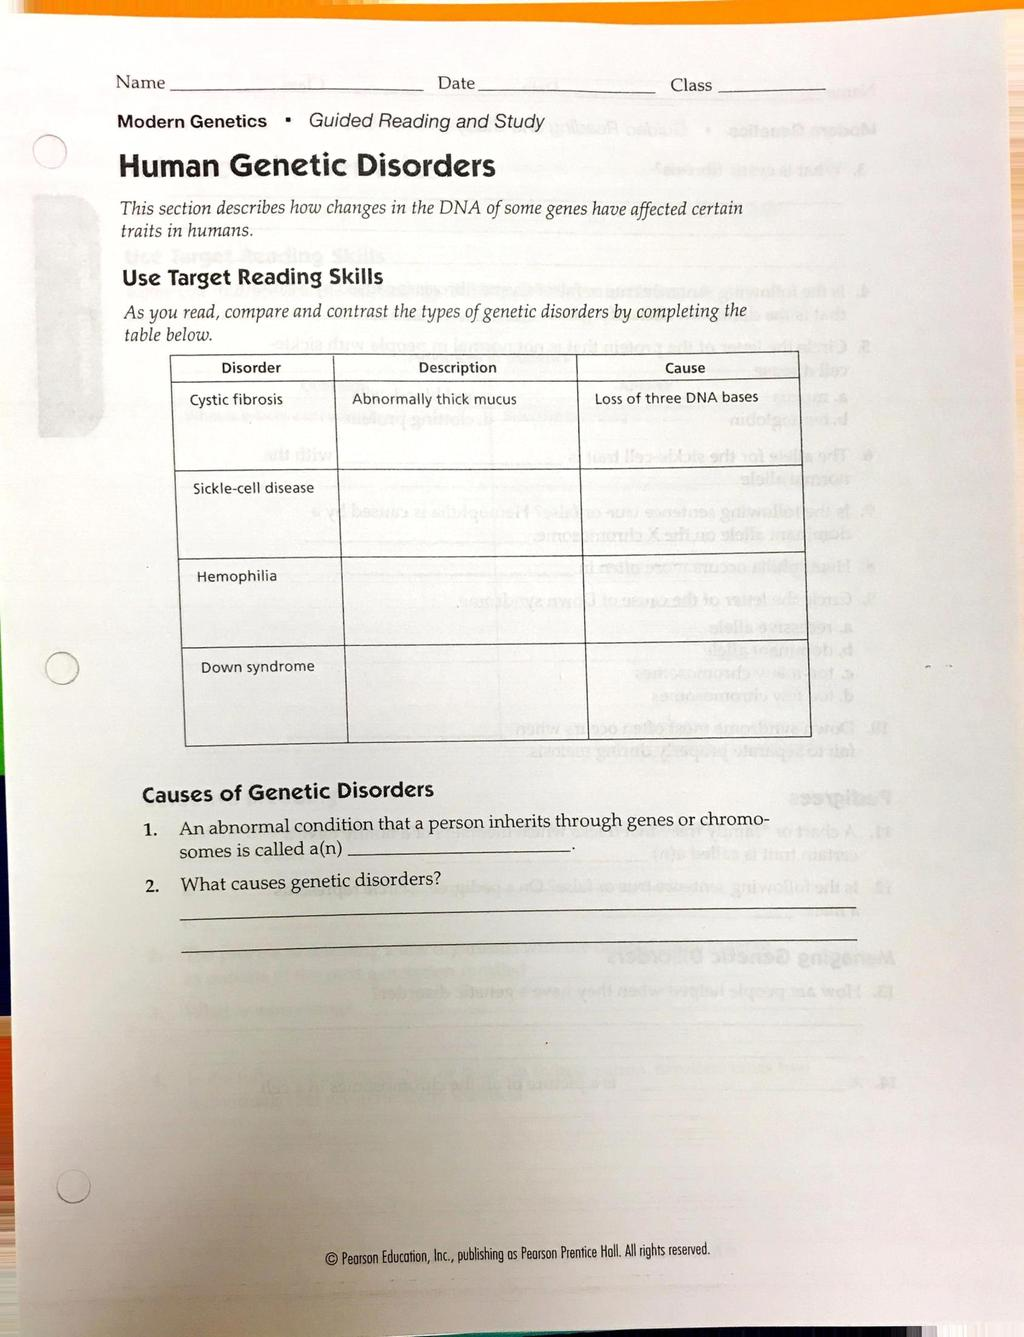 Human Genetic Disorders This section describes how changes in the DNA of some genes have affected certain traits in humans. Use Target Reading Skills As you read, compare table below.